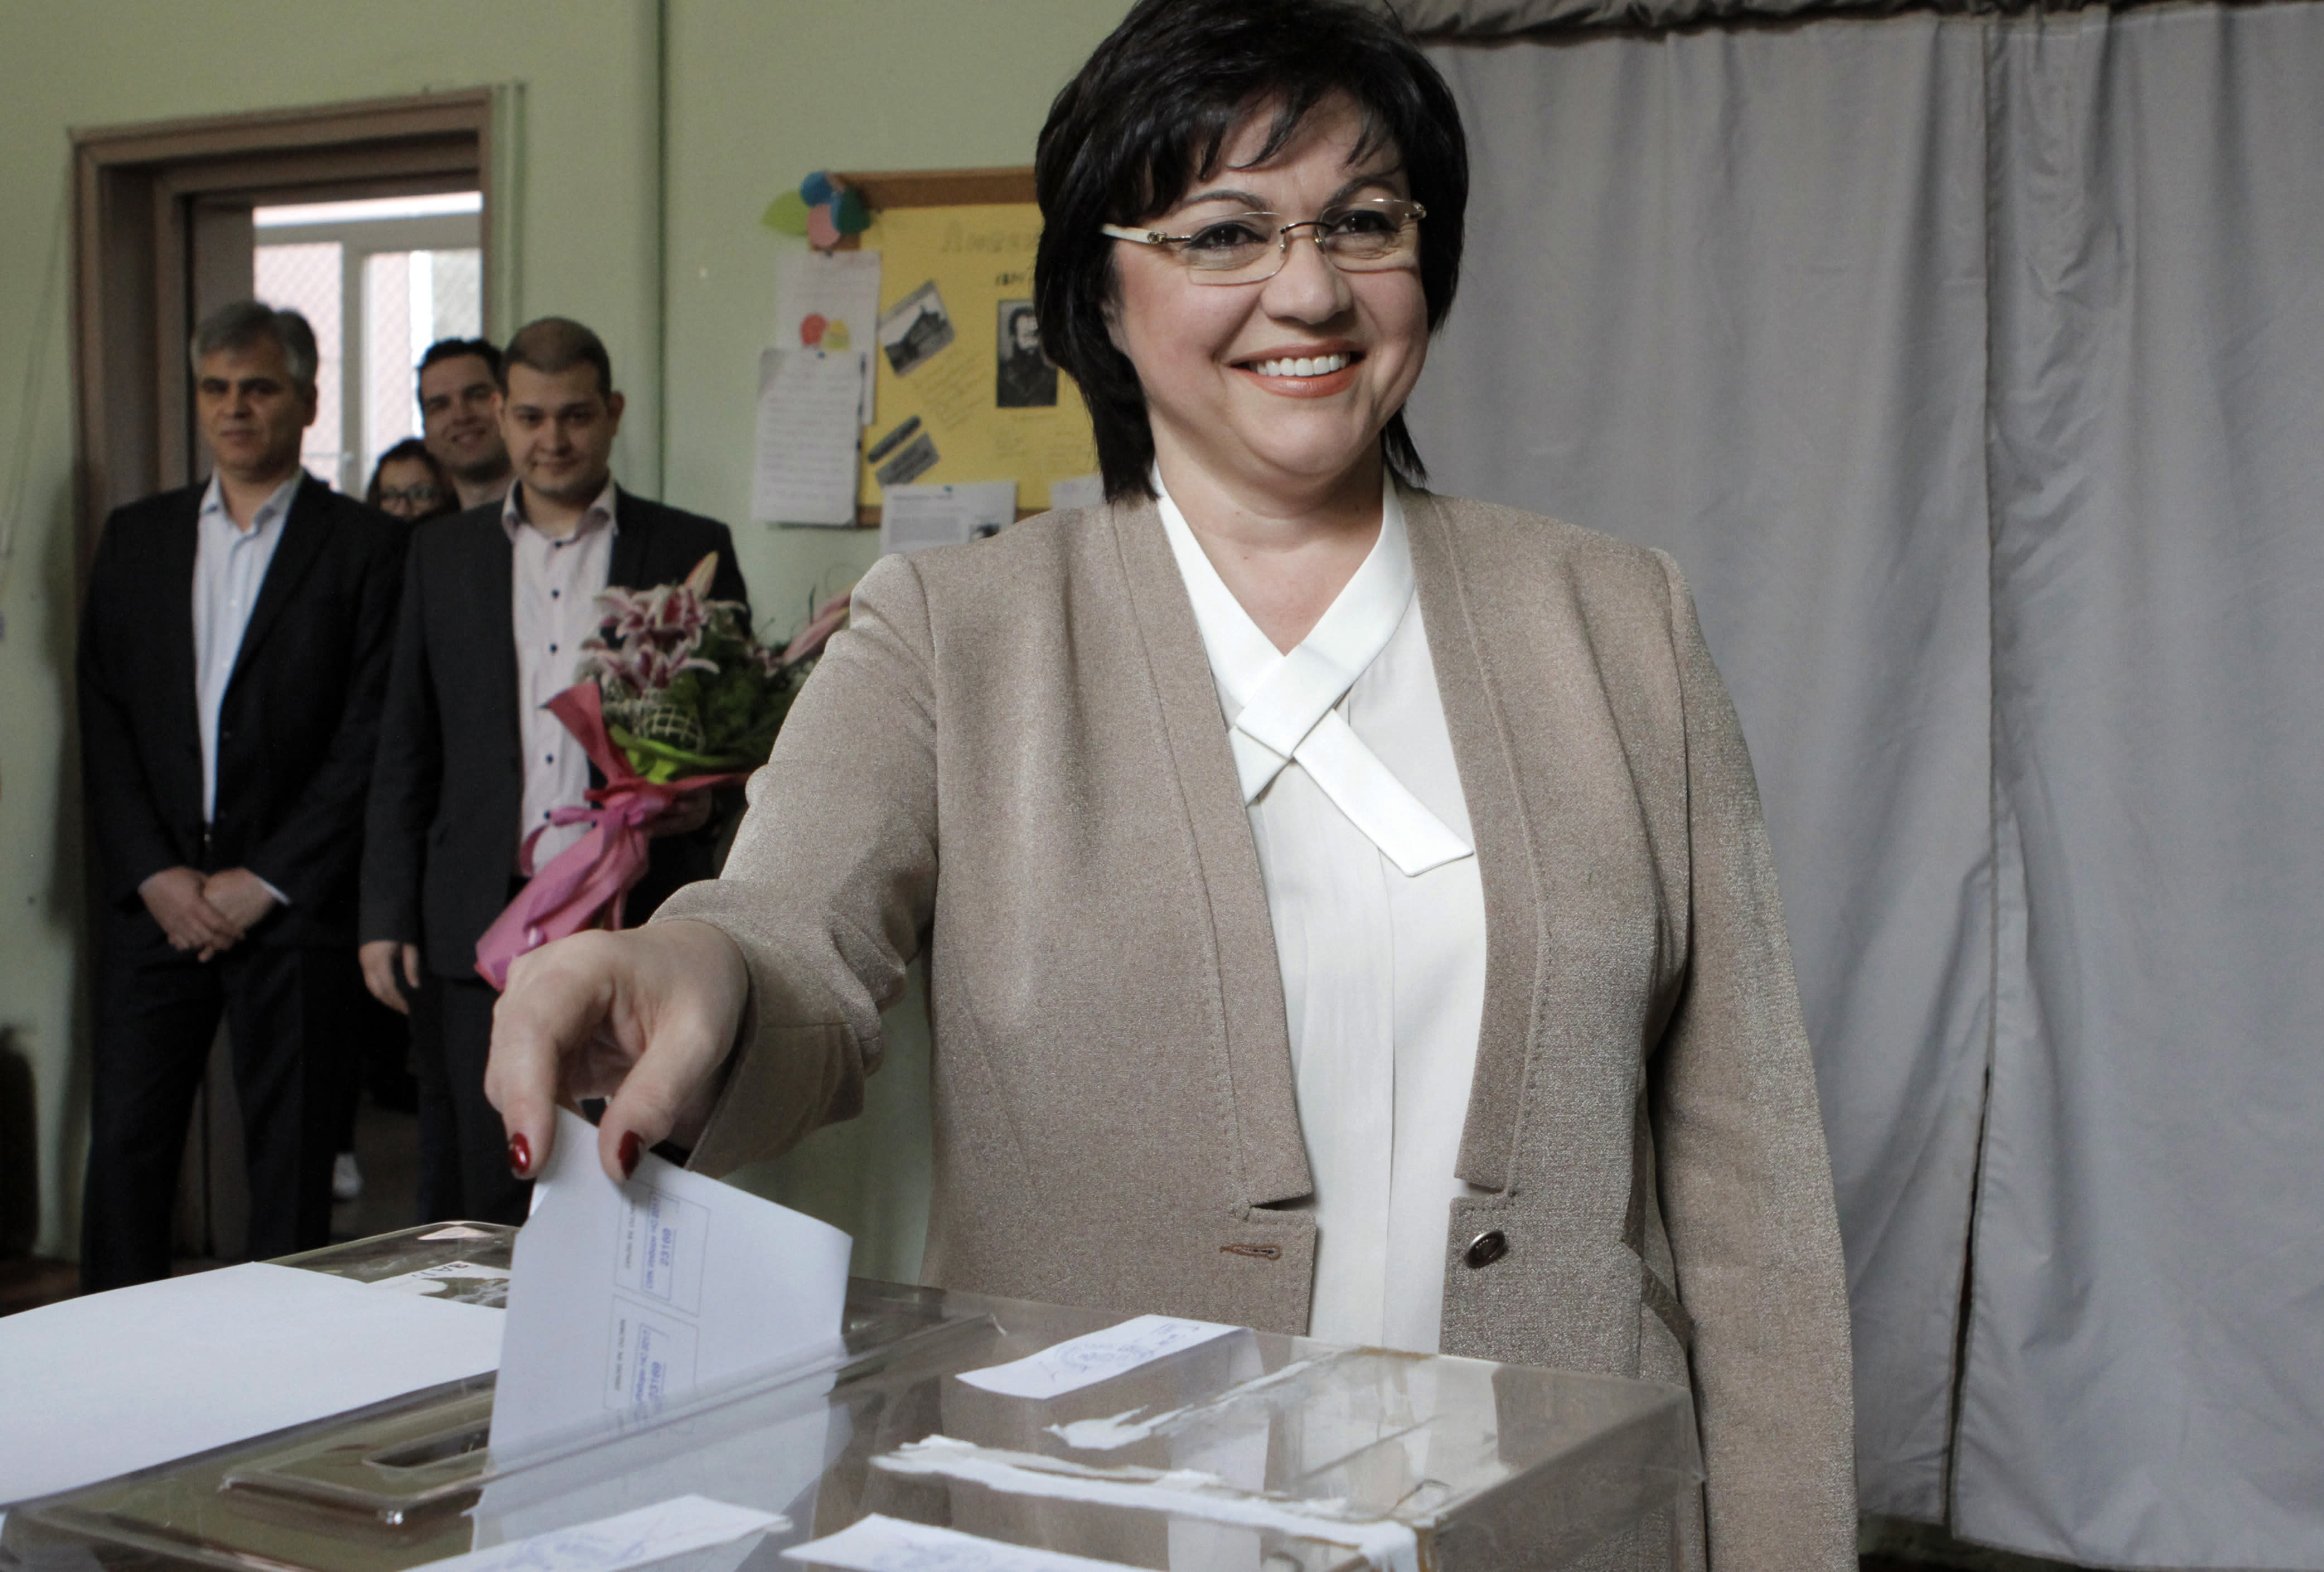 Bulgarian Socialists' Party leader Kornelia Ninova smiles as she casts her vote in Sofia on Sunday, March 26, 2017. Bulgarians are heading to the polls for the third time in four years in a snap vote that could tilt the European Union's poorest member country closer to Russia as surveys put the GERB party neck-and-neck with the Socialist Party. (AP Photo/Valentina Petrova)